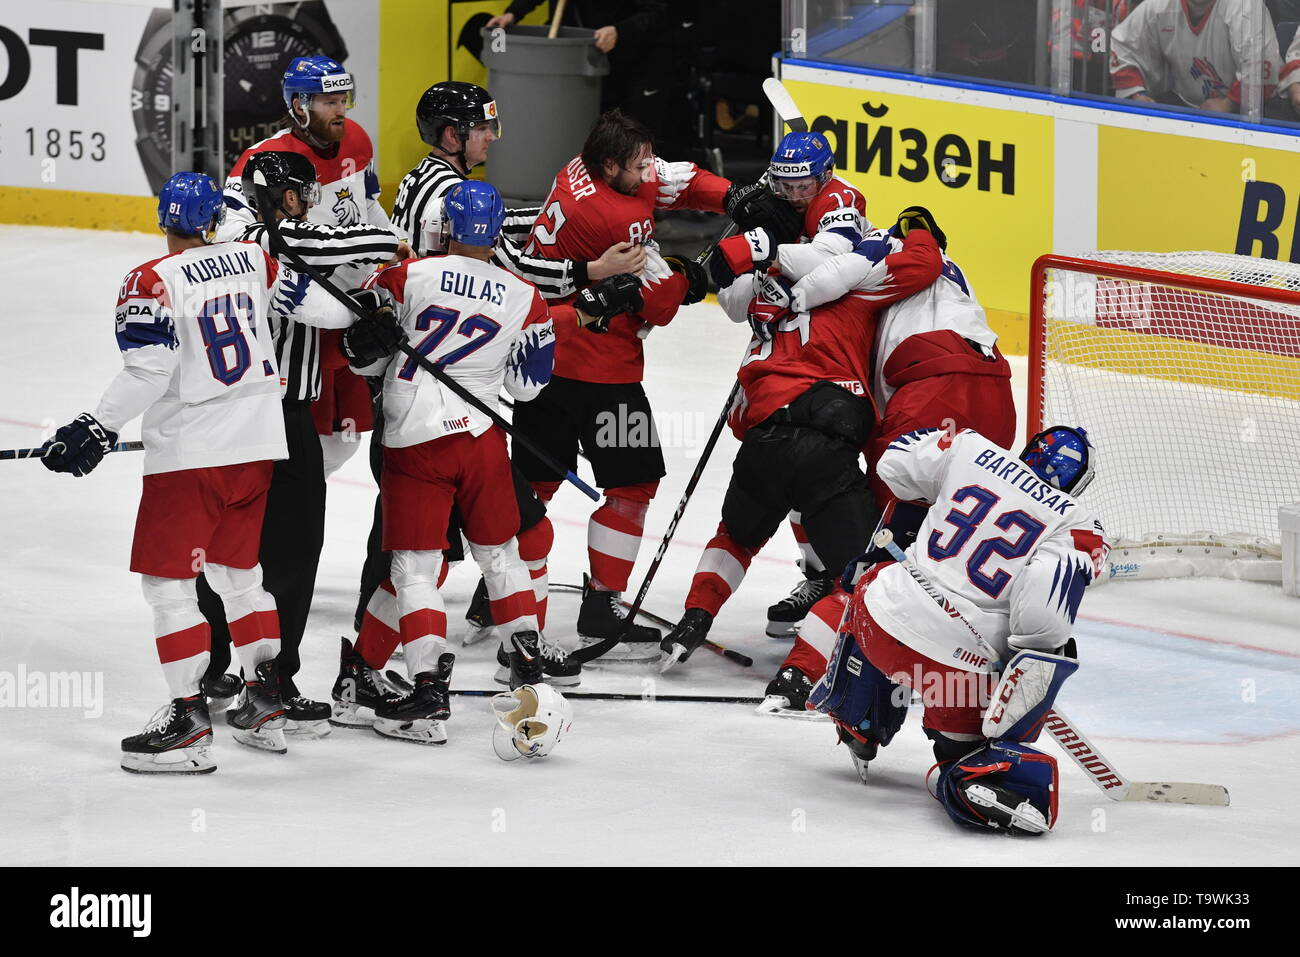 Bratislava, Slovakia. 21st May, 2019. A skirmish during the match between Czech Republic and Switzerland within the 2019 IIHF World Championship in Bratislava, Slovakia, on May 21, 2019. Credit: Vit Simanek/CTK Photo/Alamy Live News Stock Photo